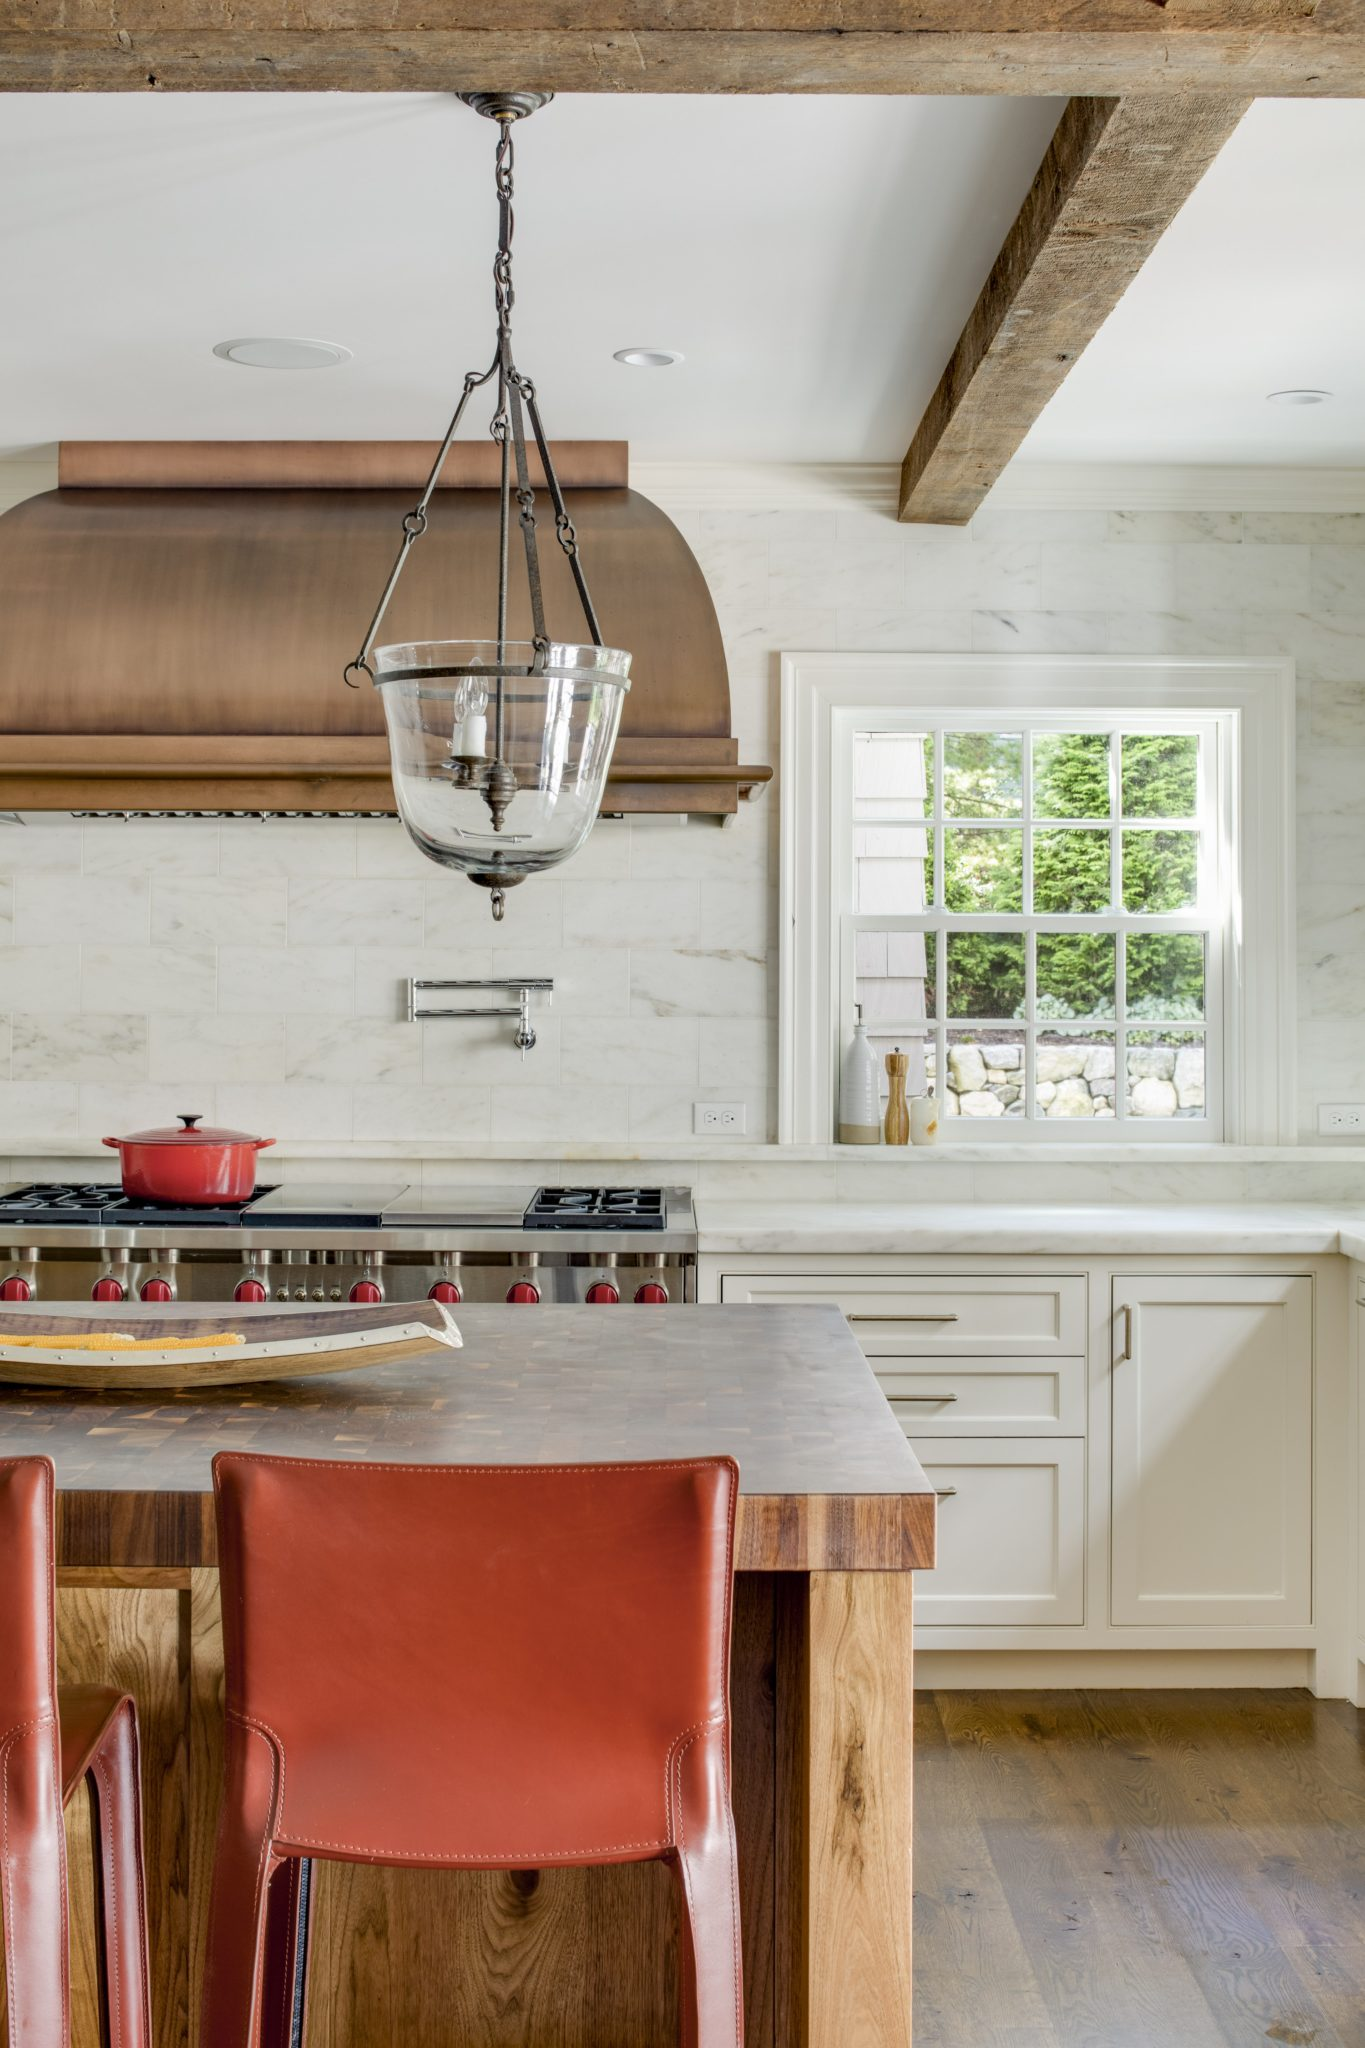 Weston Historic Farmhouse | Weston, MA by Patrick Ahearn Architect